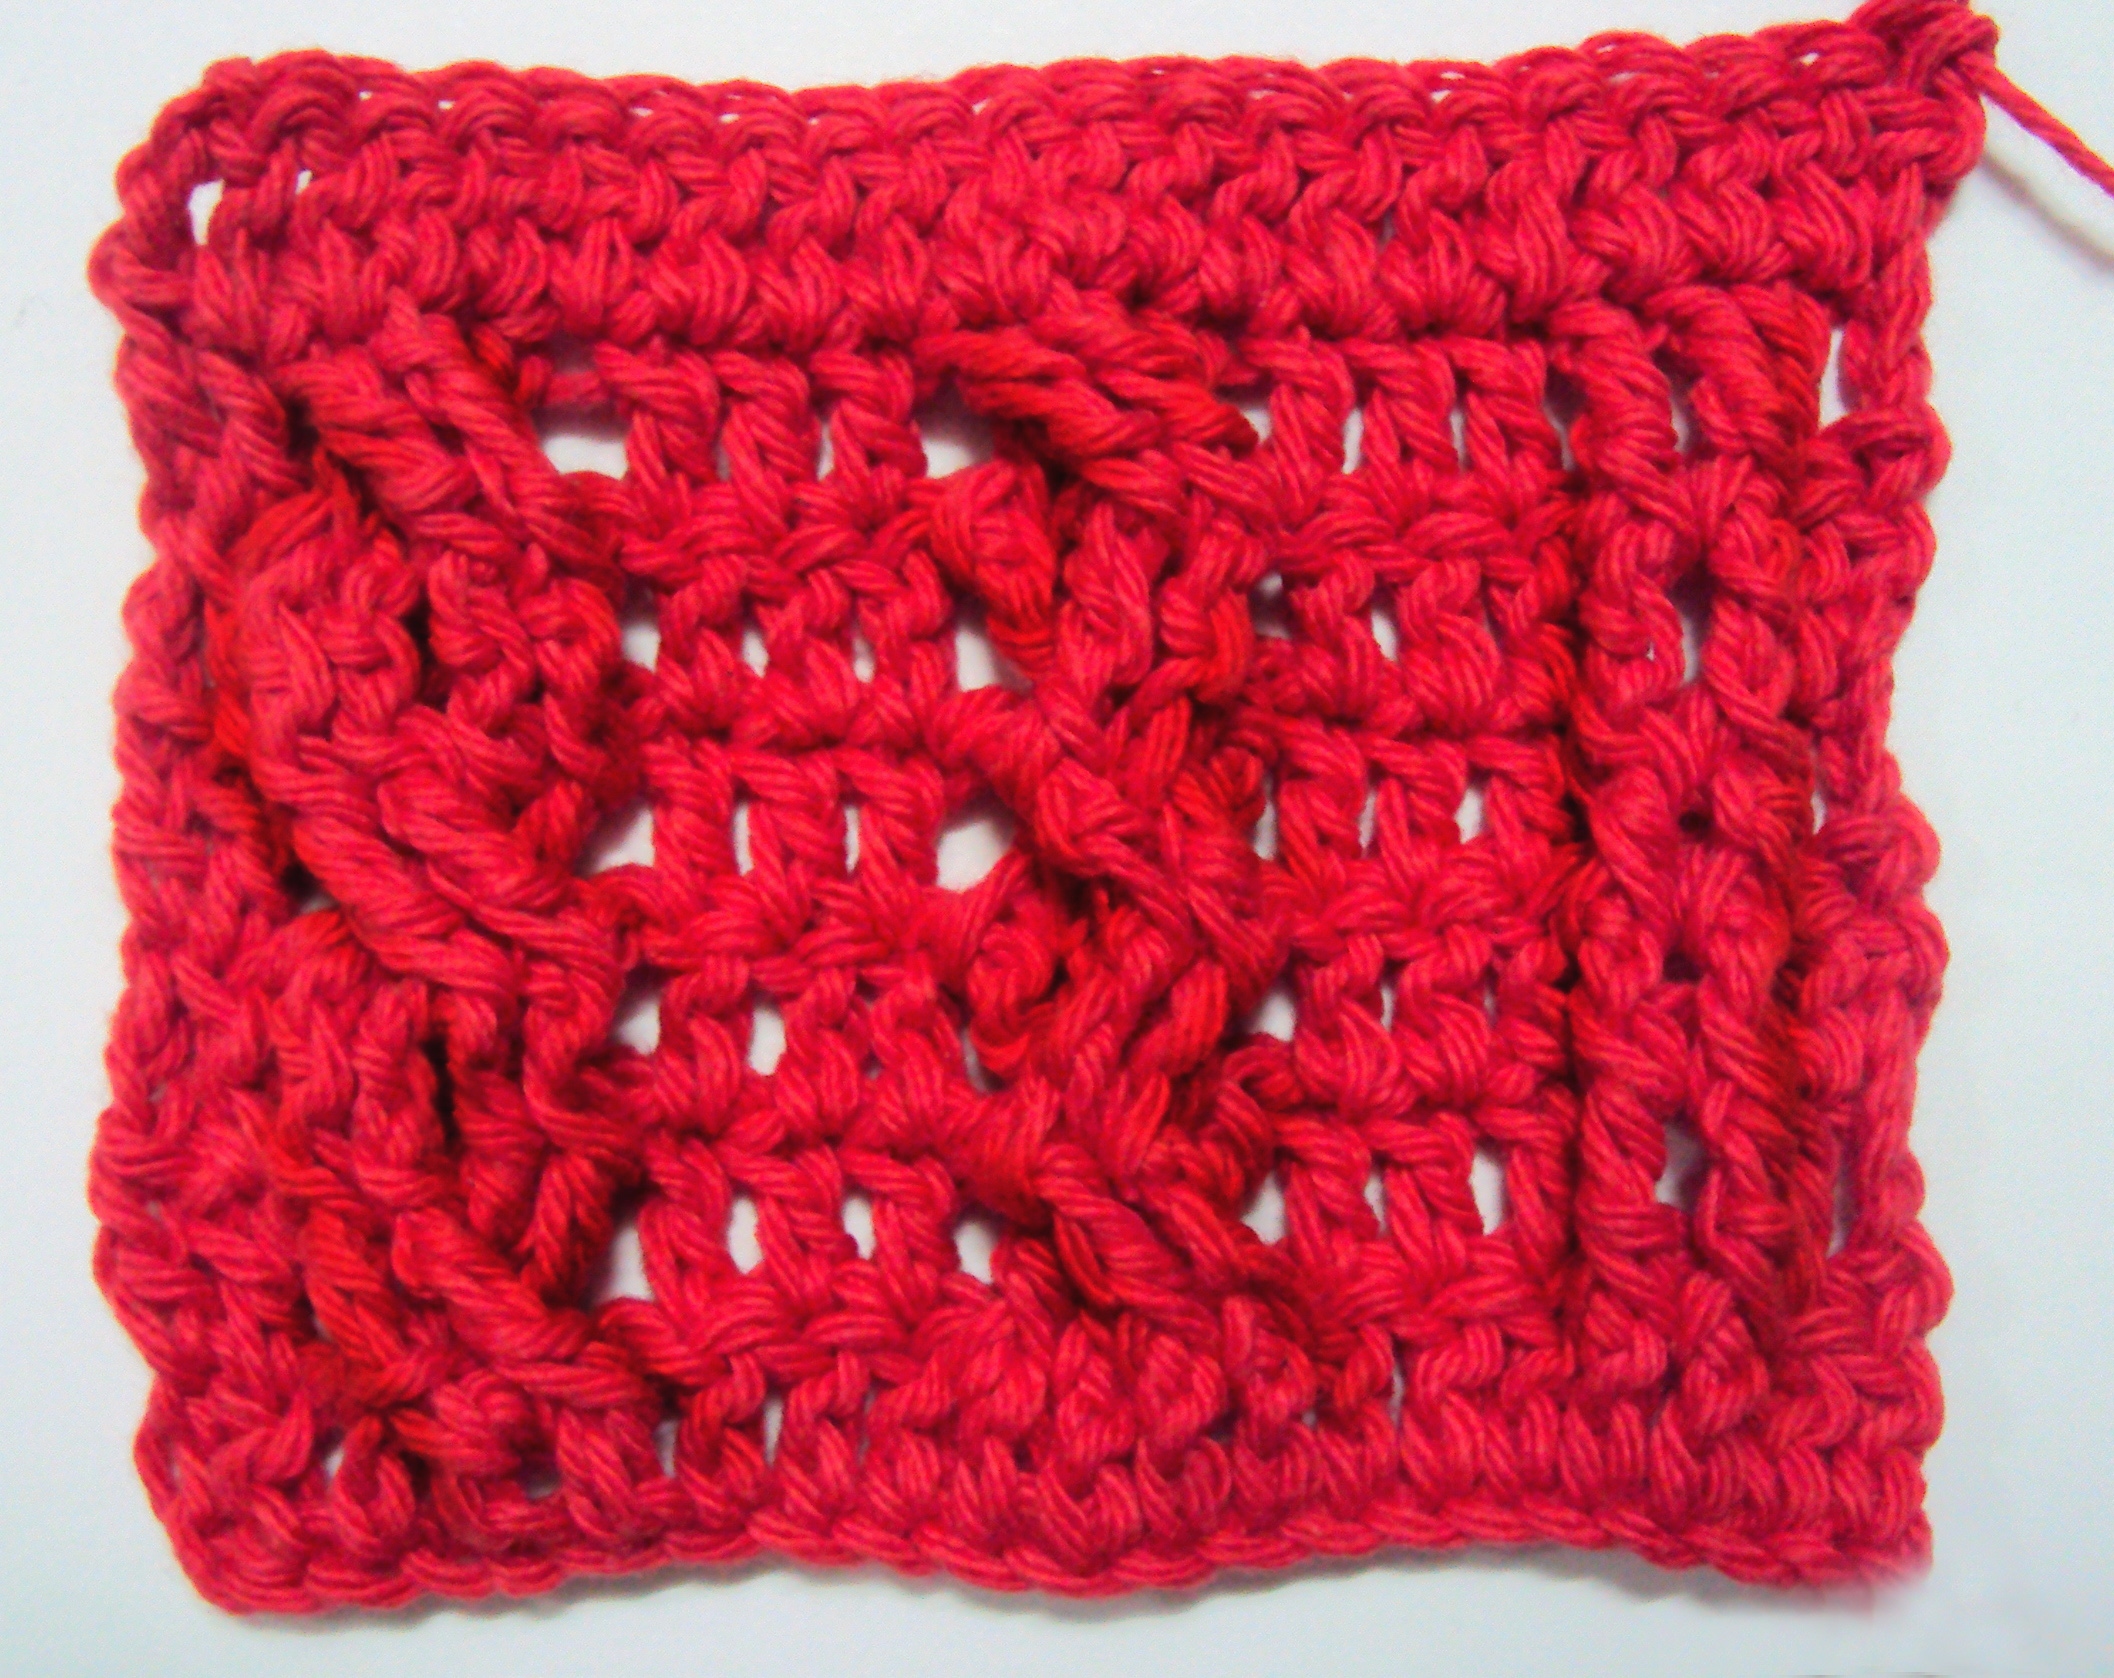 How To Crochet : Crochet Spot ? Blog Archive ? How to Crochet: Cable Stitches ...